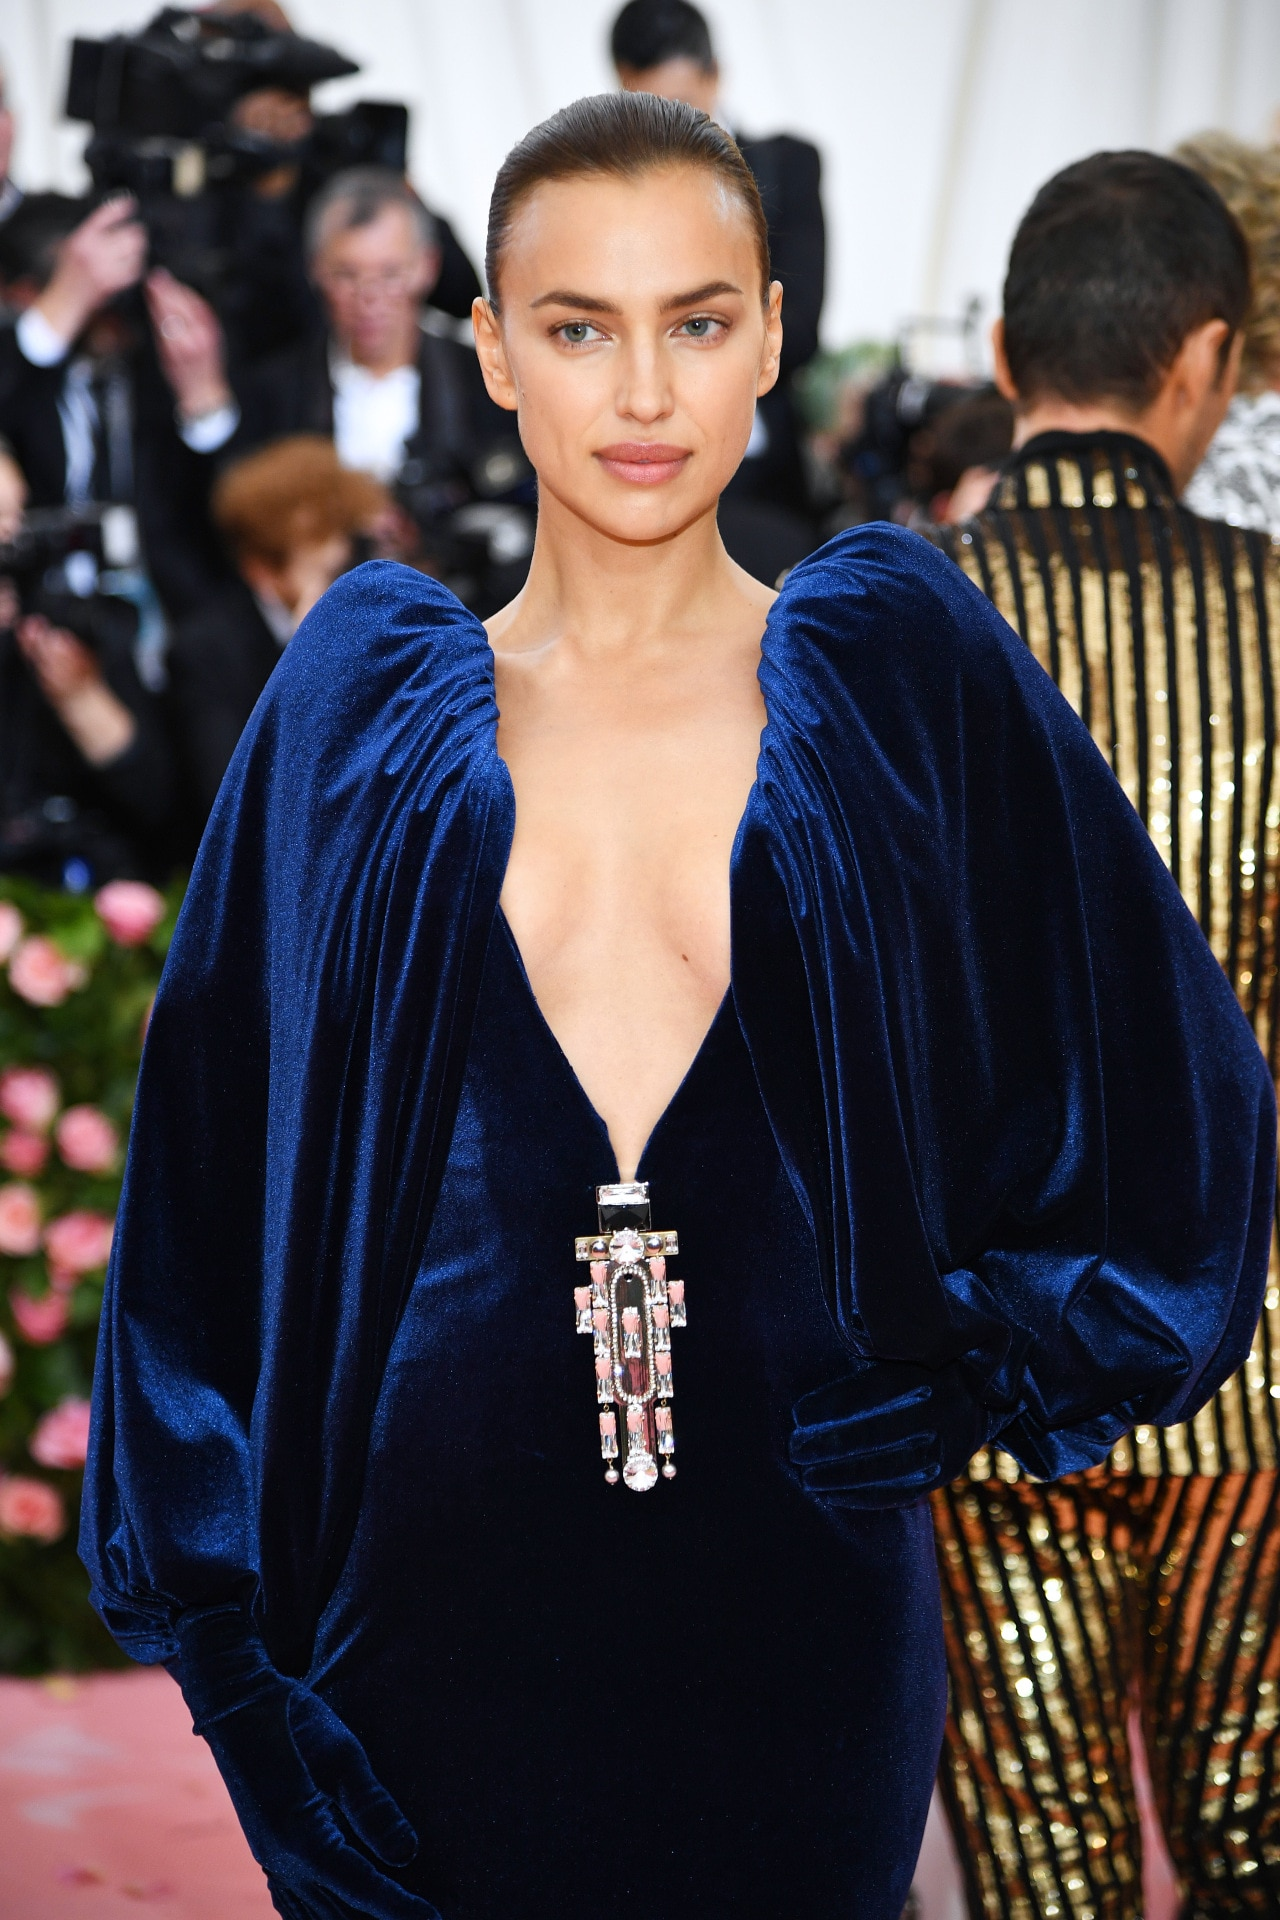 Model Irina Shayk gets candid about diets, work ethic and the beauty secret she swears by